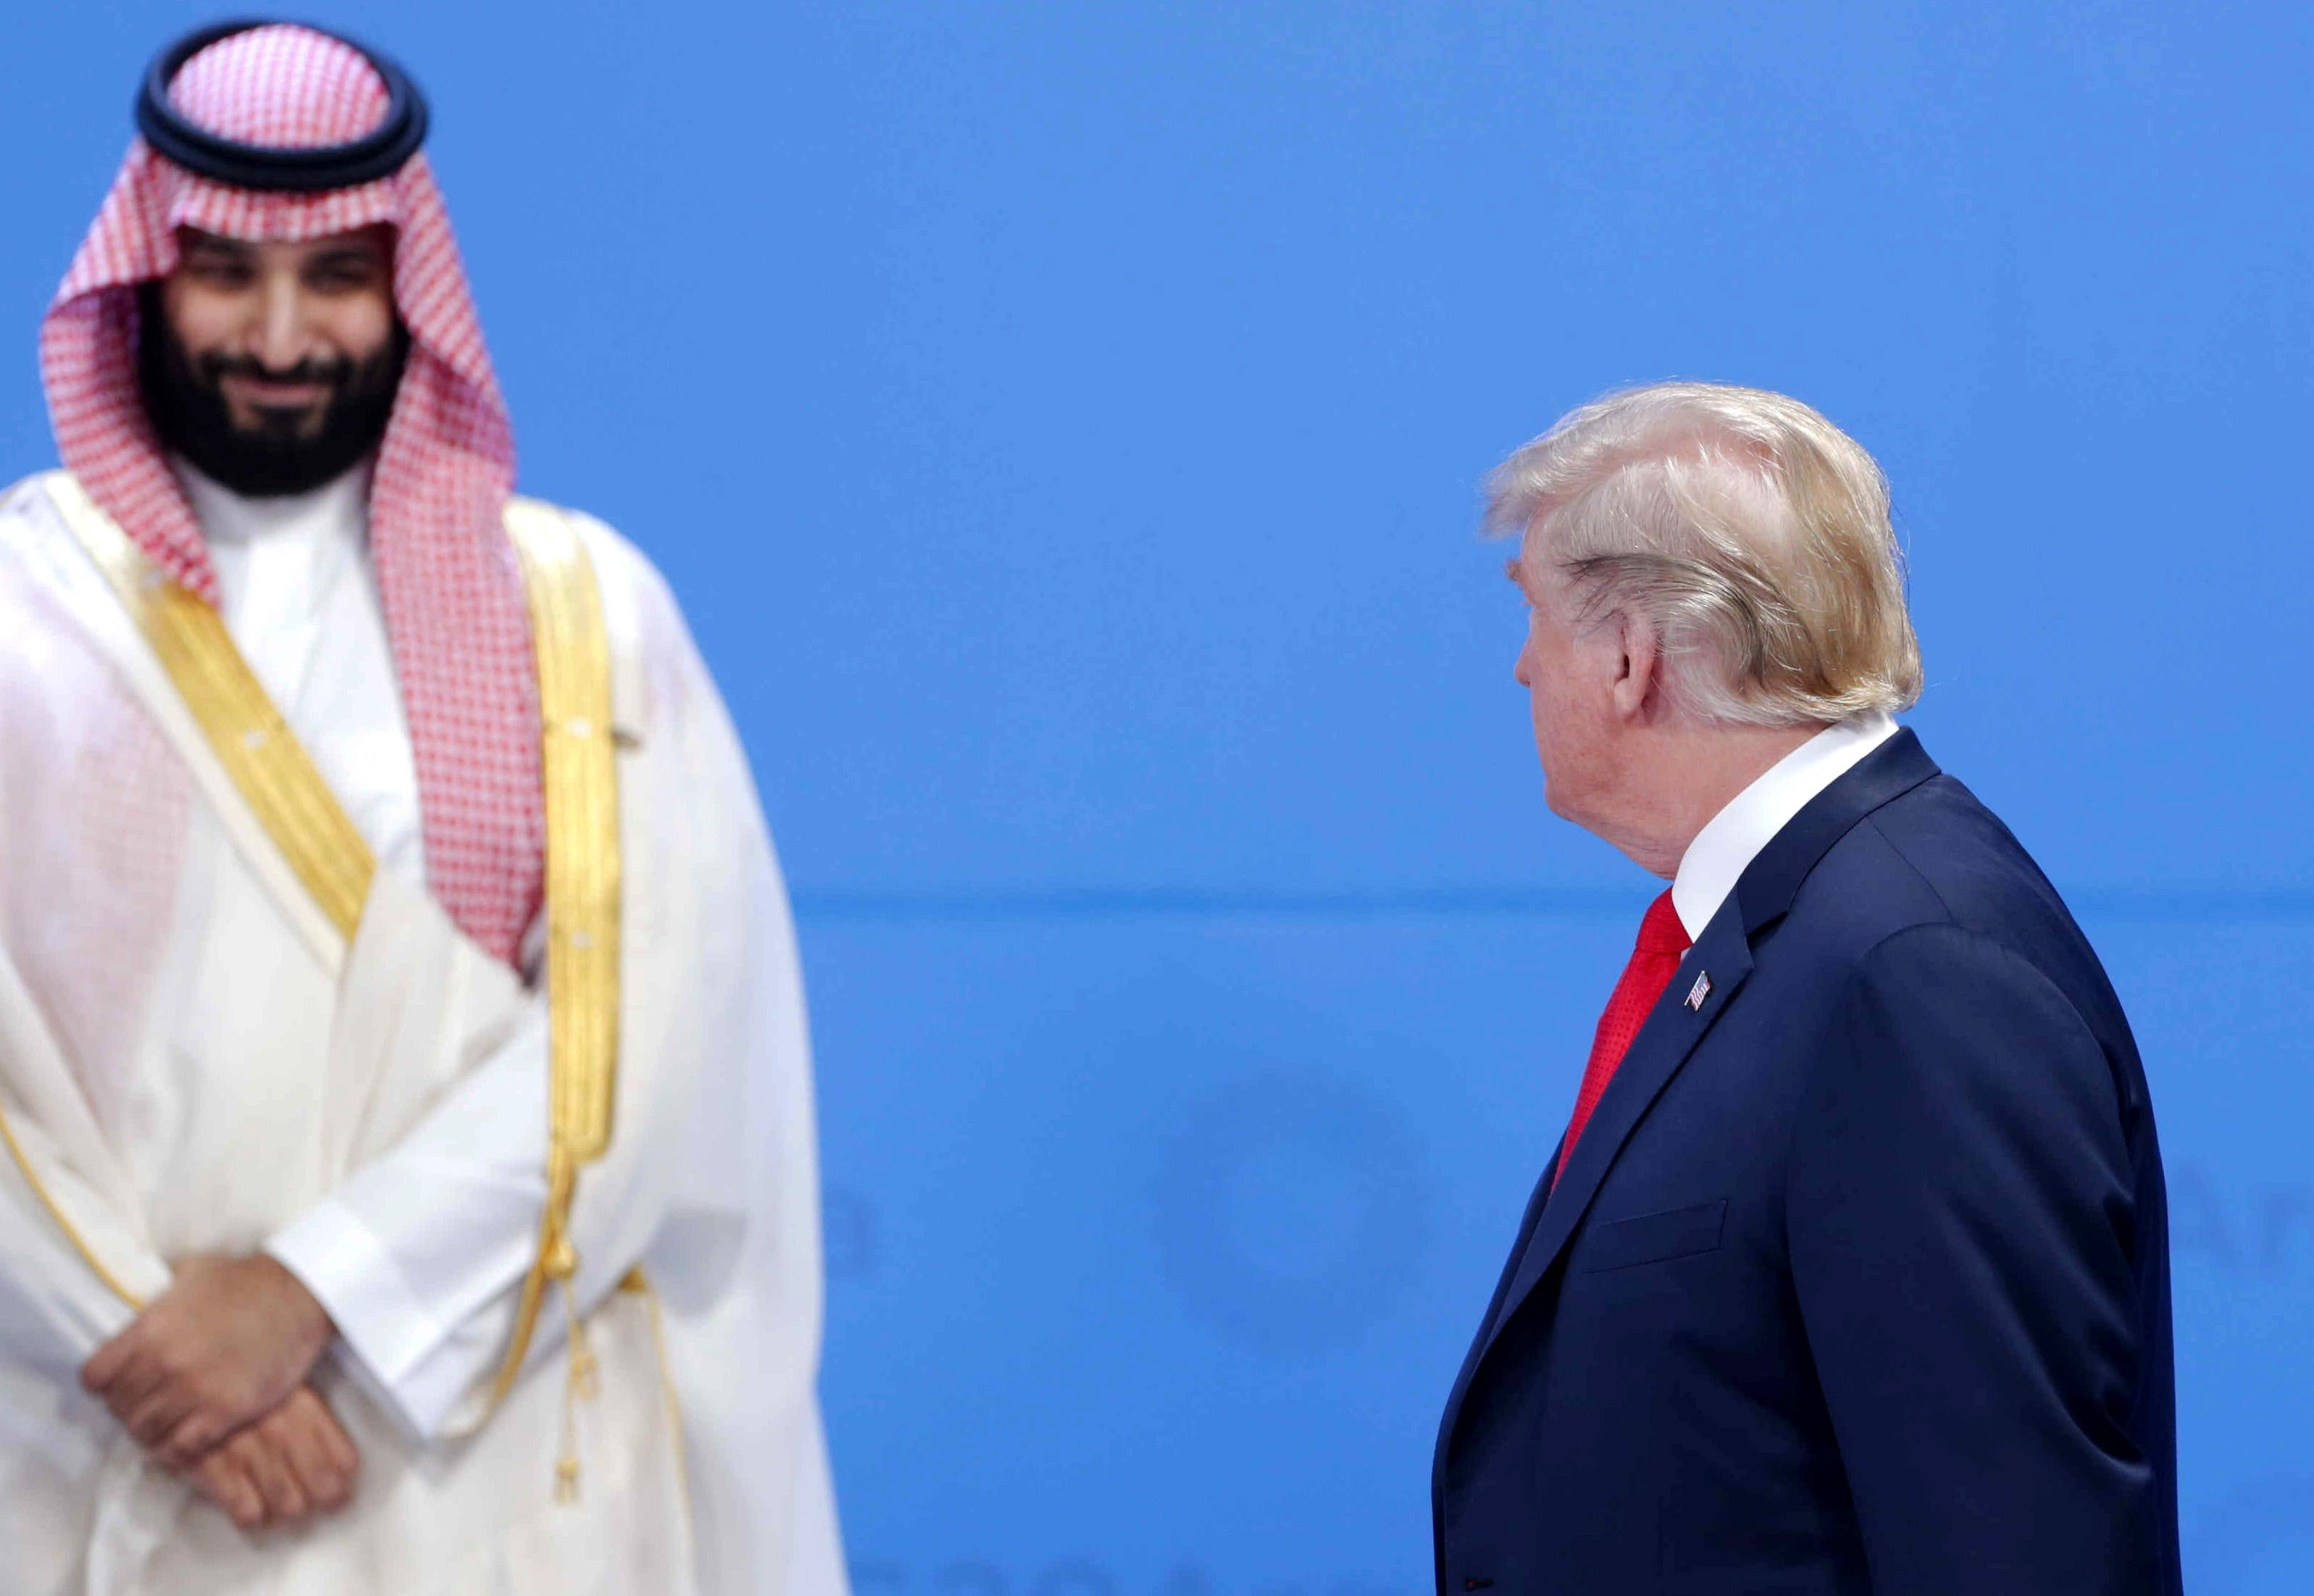 President Trump looks over at Crown Prince of Saudi Arabia Mohammad bin Salman on the opening day of Argentina G20 Leaders' Summit 2018 at Costa Salguero on Nov. 30, 2018 in Buenos Aires, Argentina.